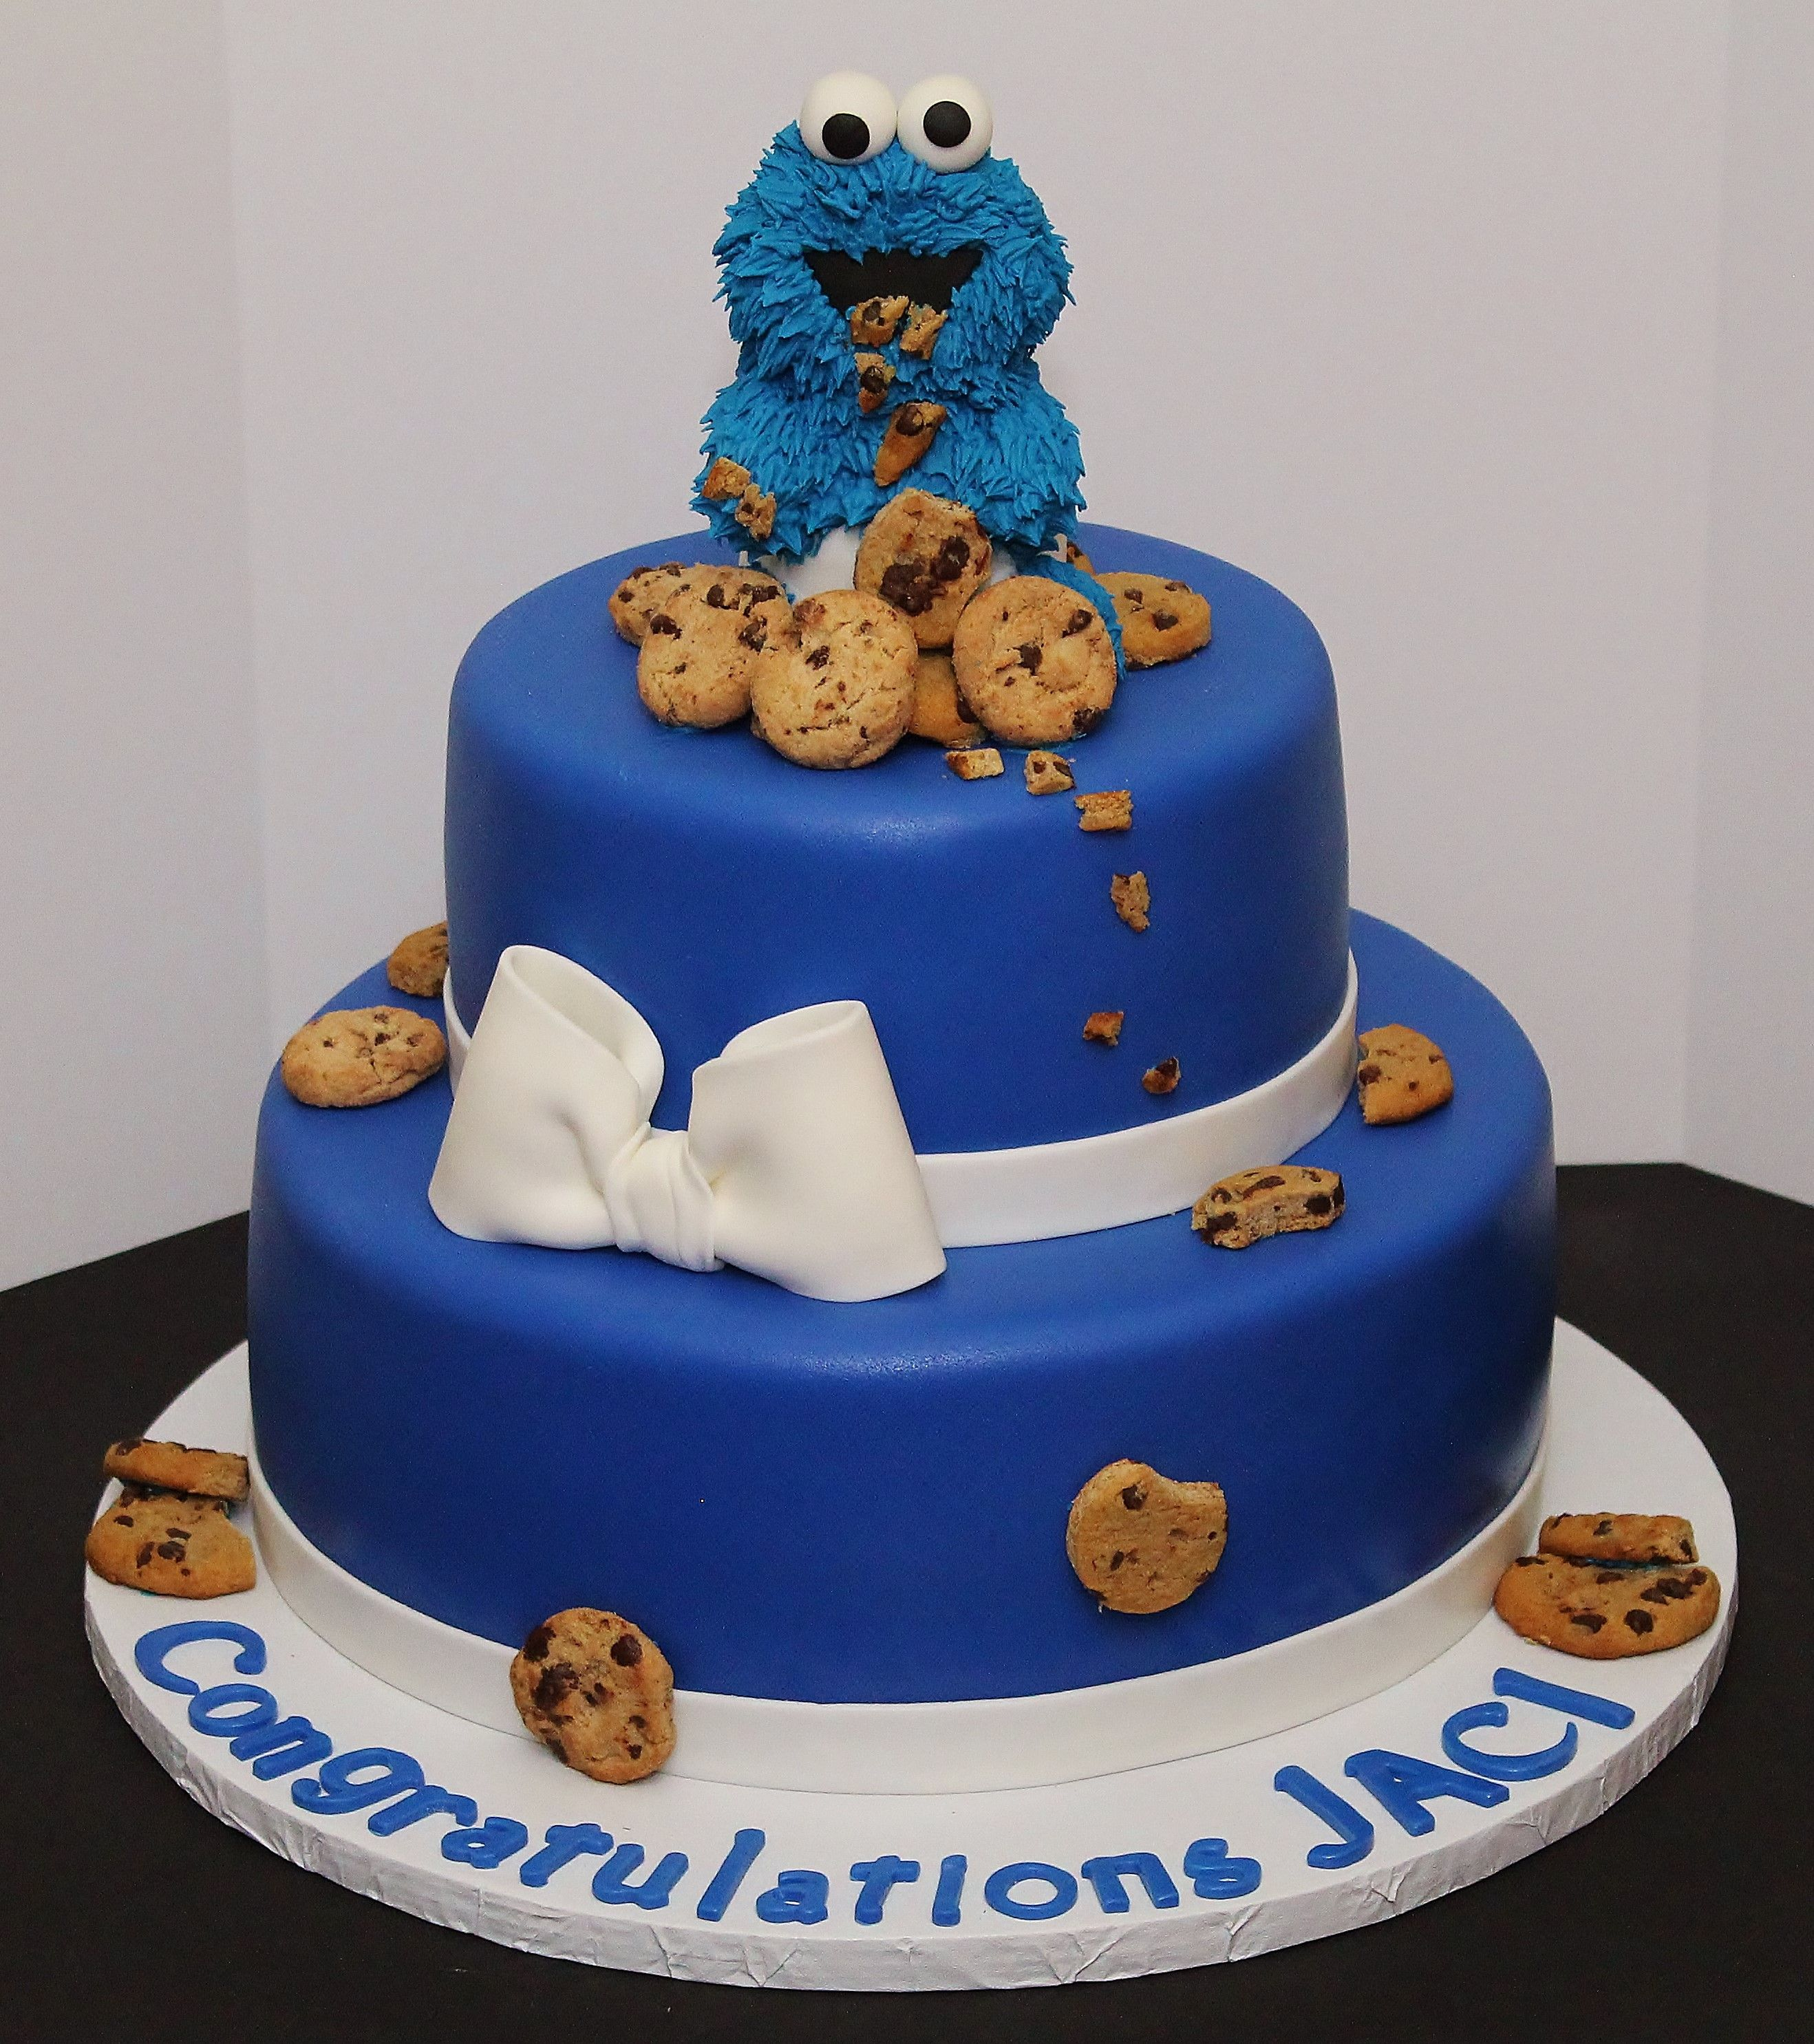 Cookie monster baby shower cake by cecy huezo www